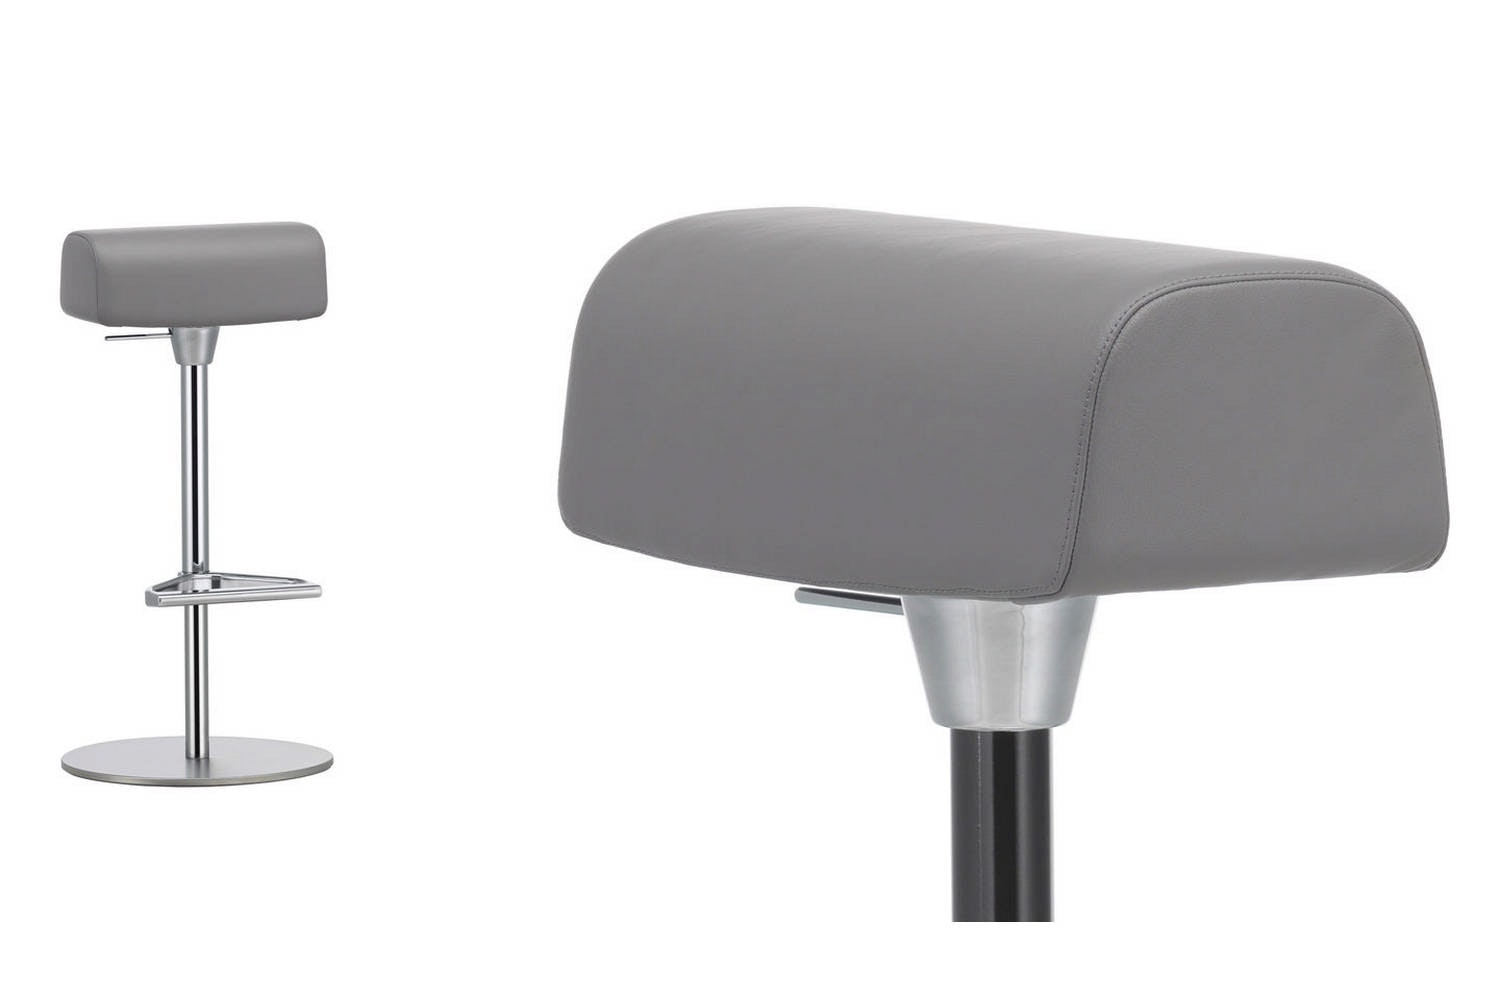 Zeb Stool Gym by Edward Barber & Jay Osgerby for Vitra